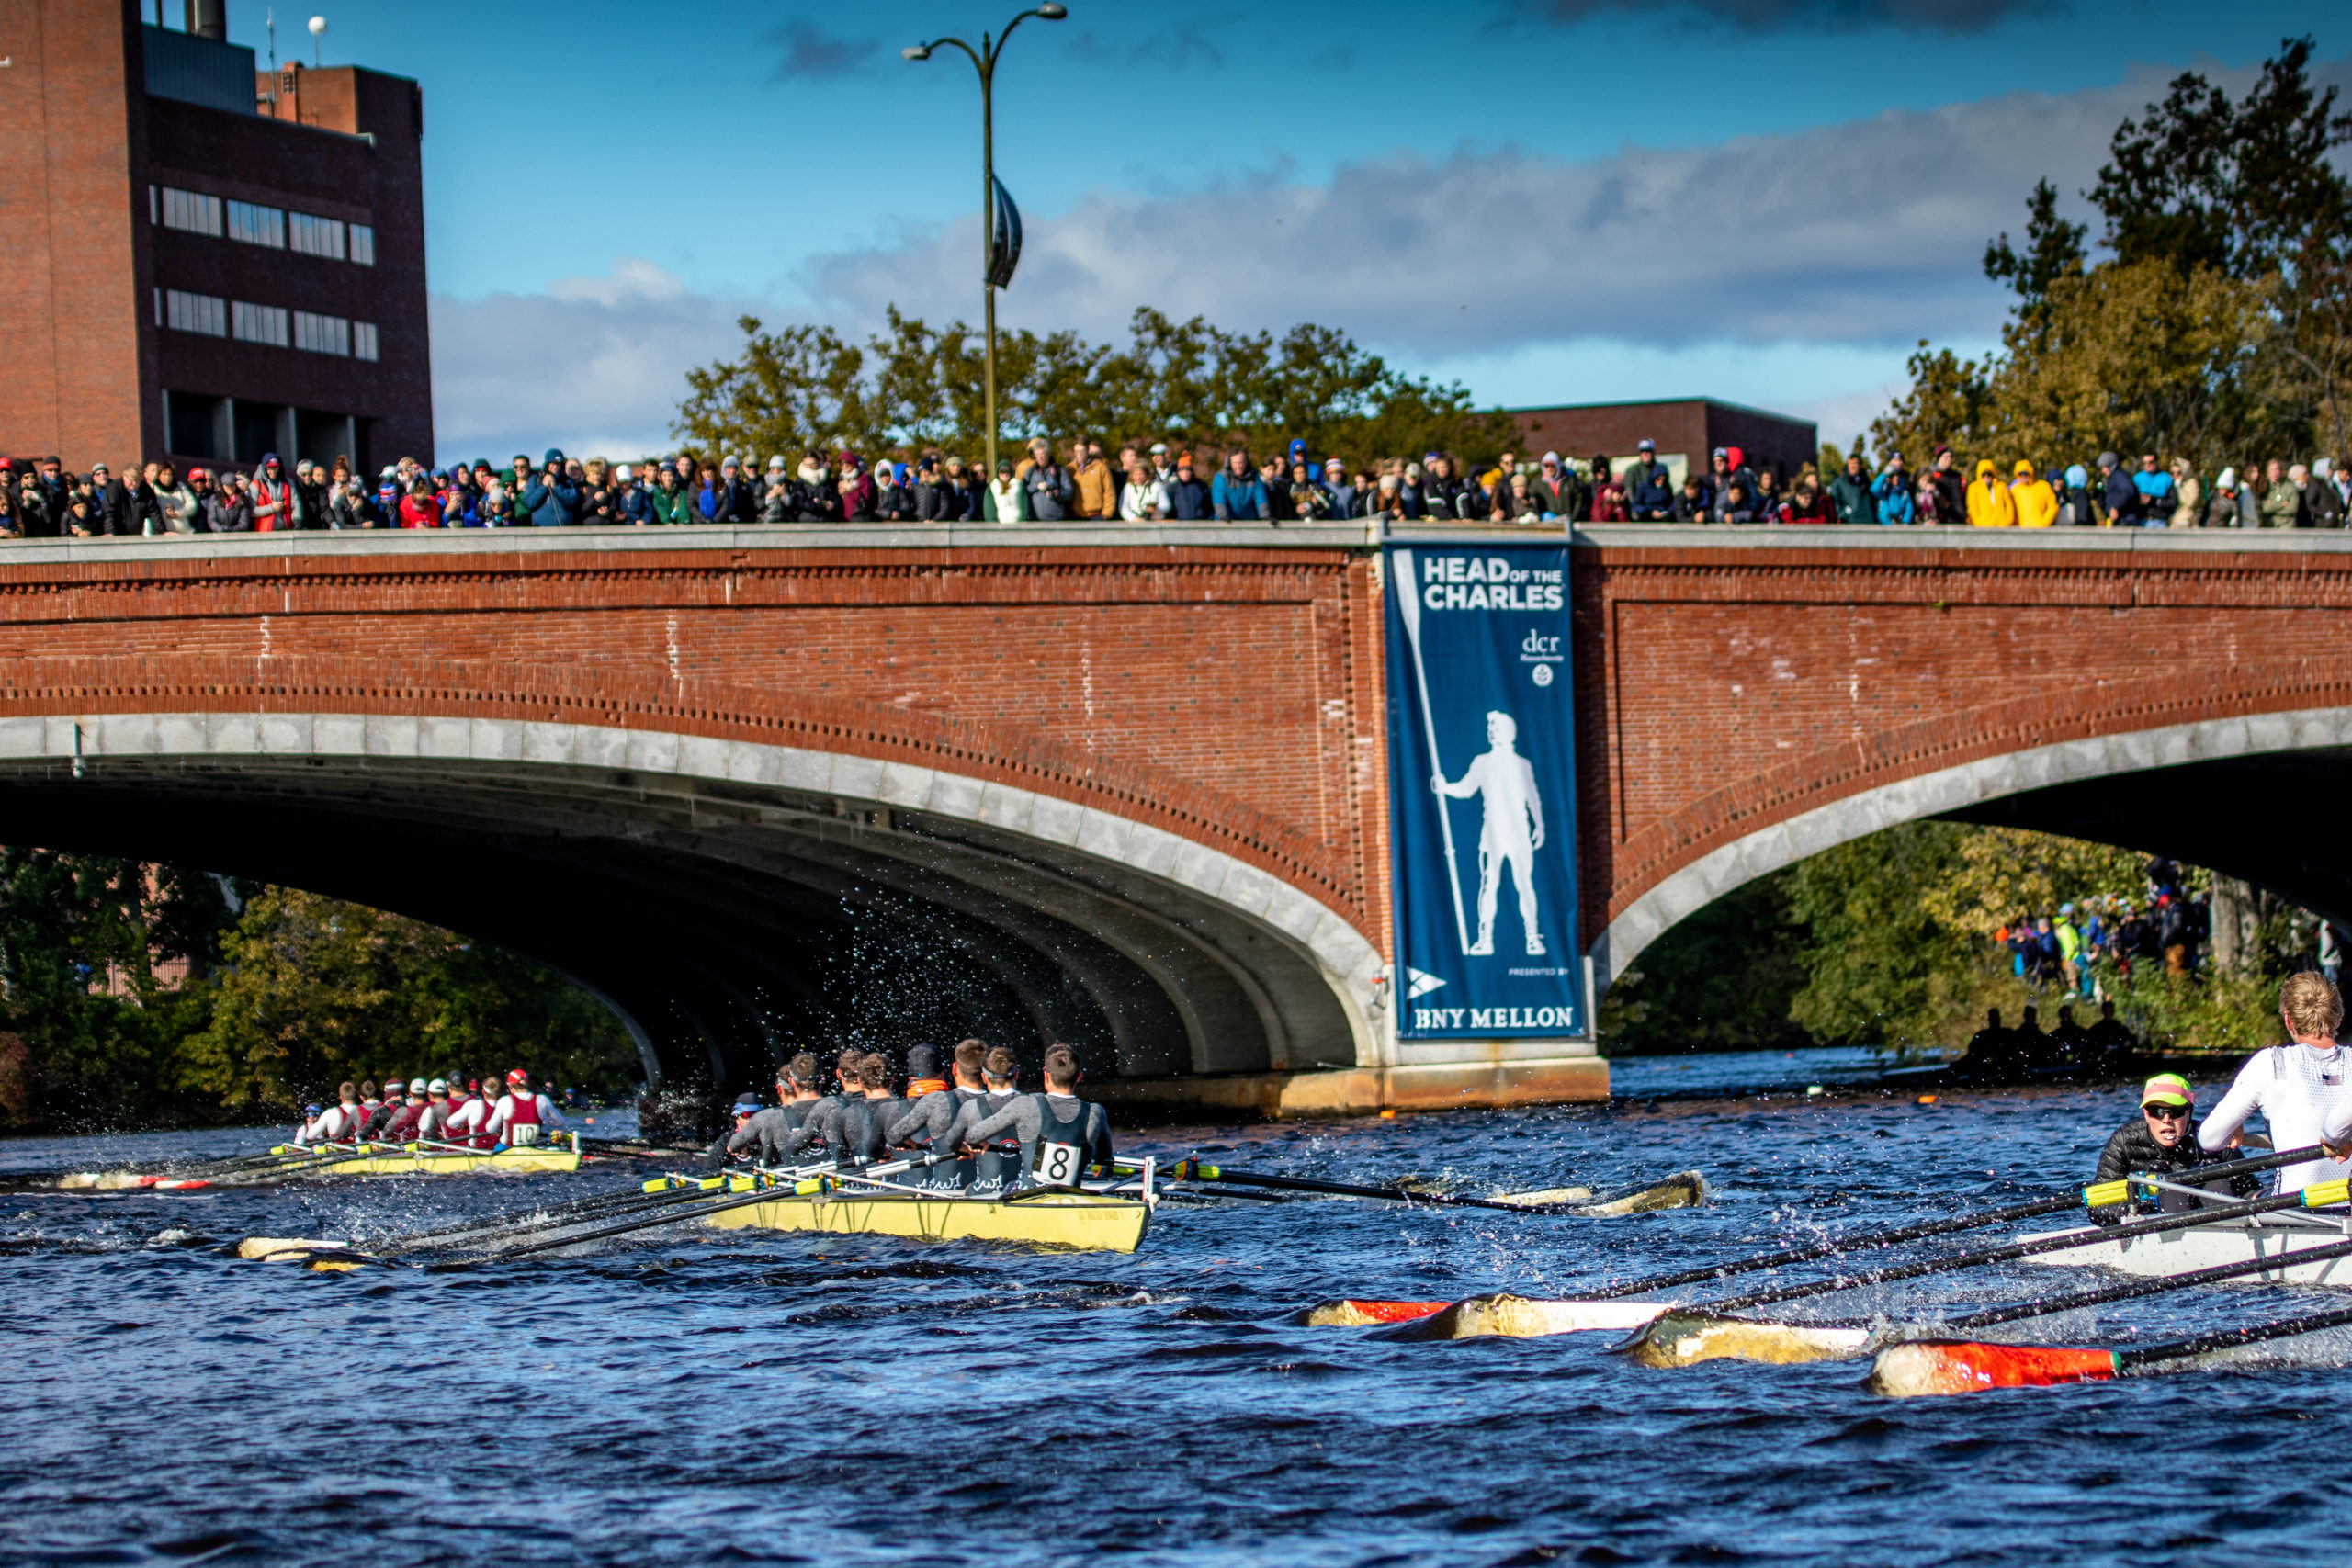 BNY Mellon Returns for Fifth Year as the Lead Sponsor for the 53rd Head Of The Charles® Regatta